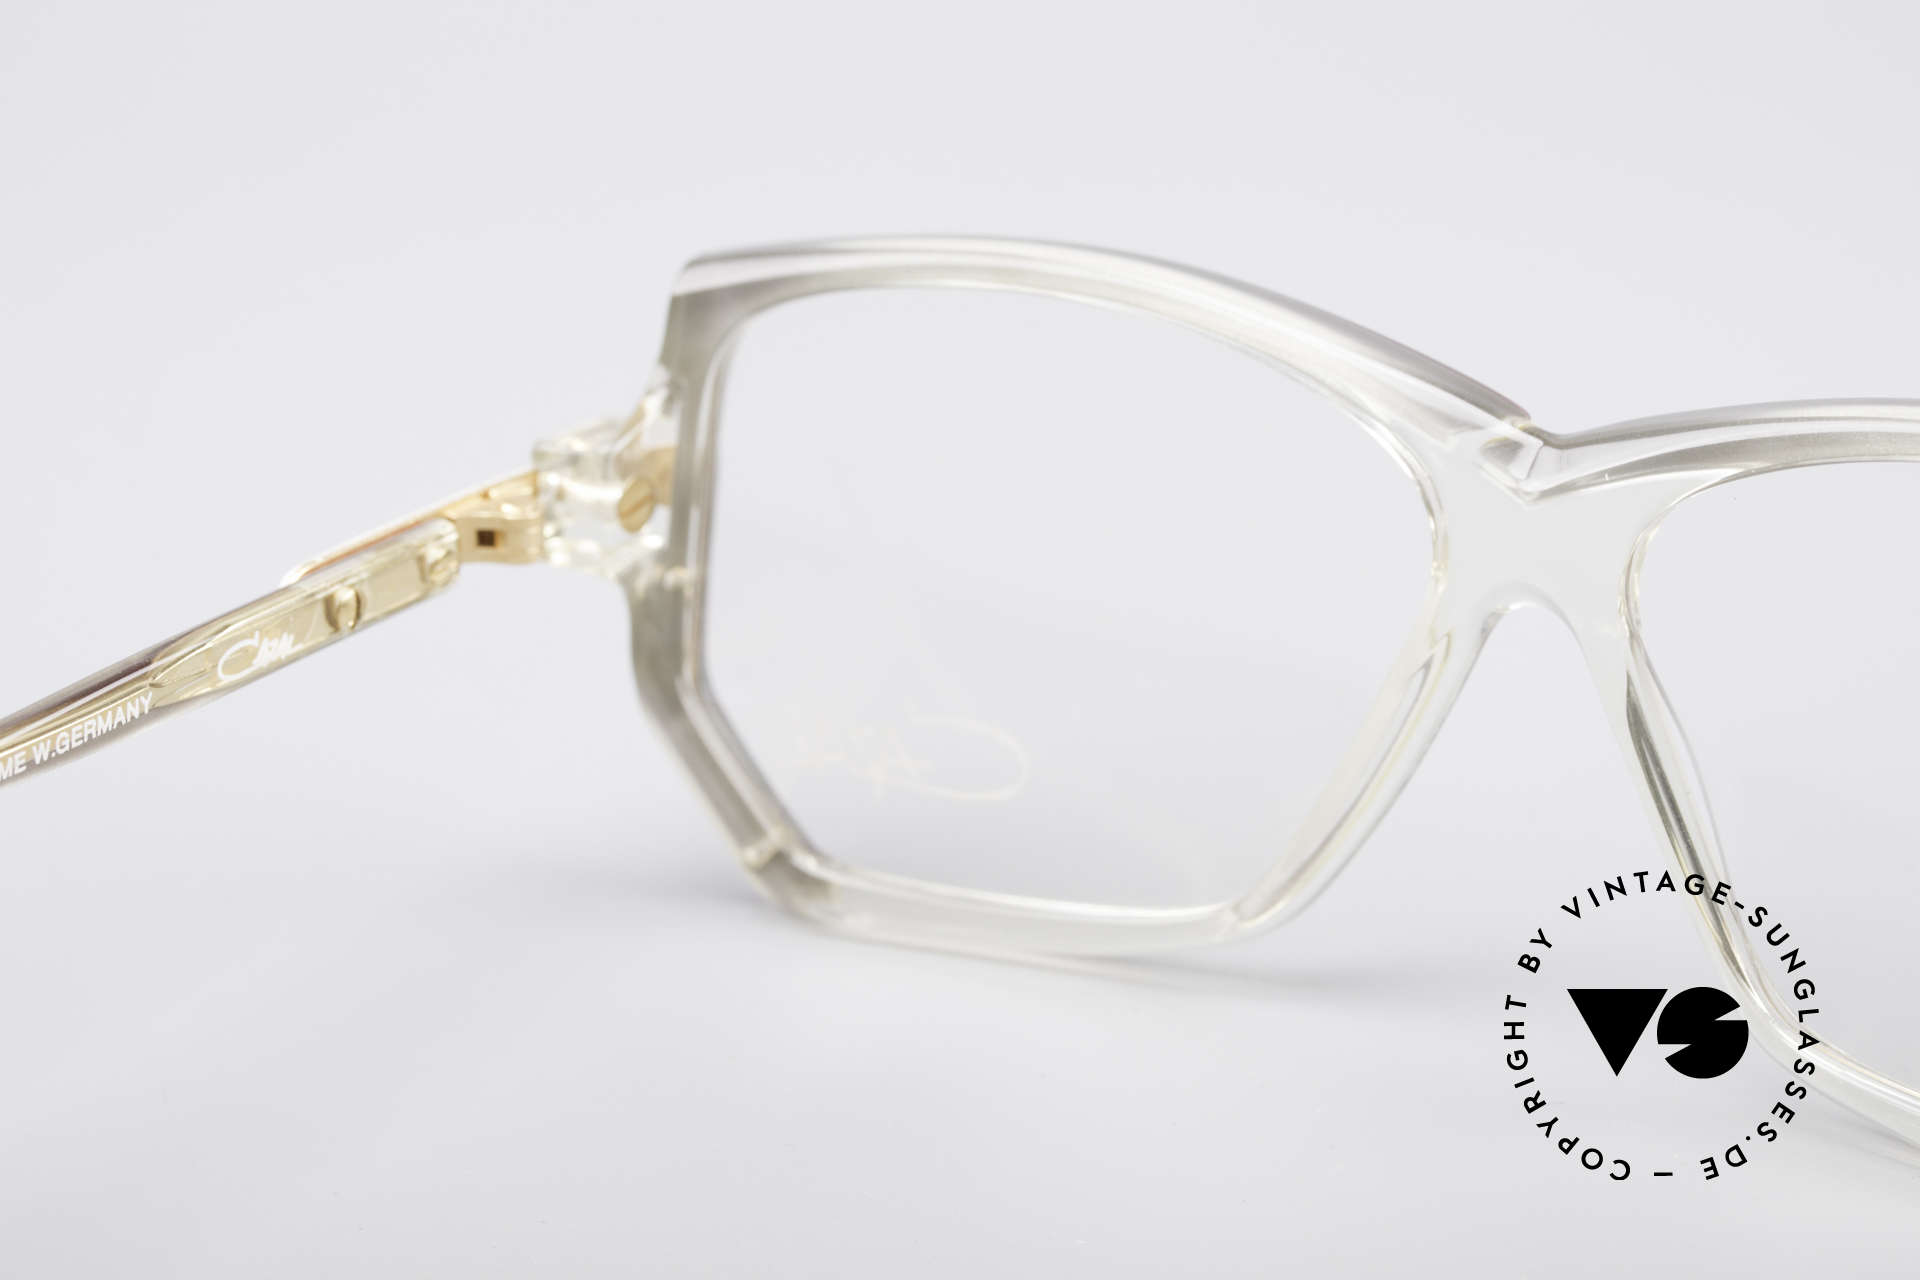 Cazal 197 80's Designer Glasses, demo lenses can be replaced with optical / sun lenses, Made for Women